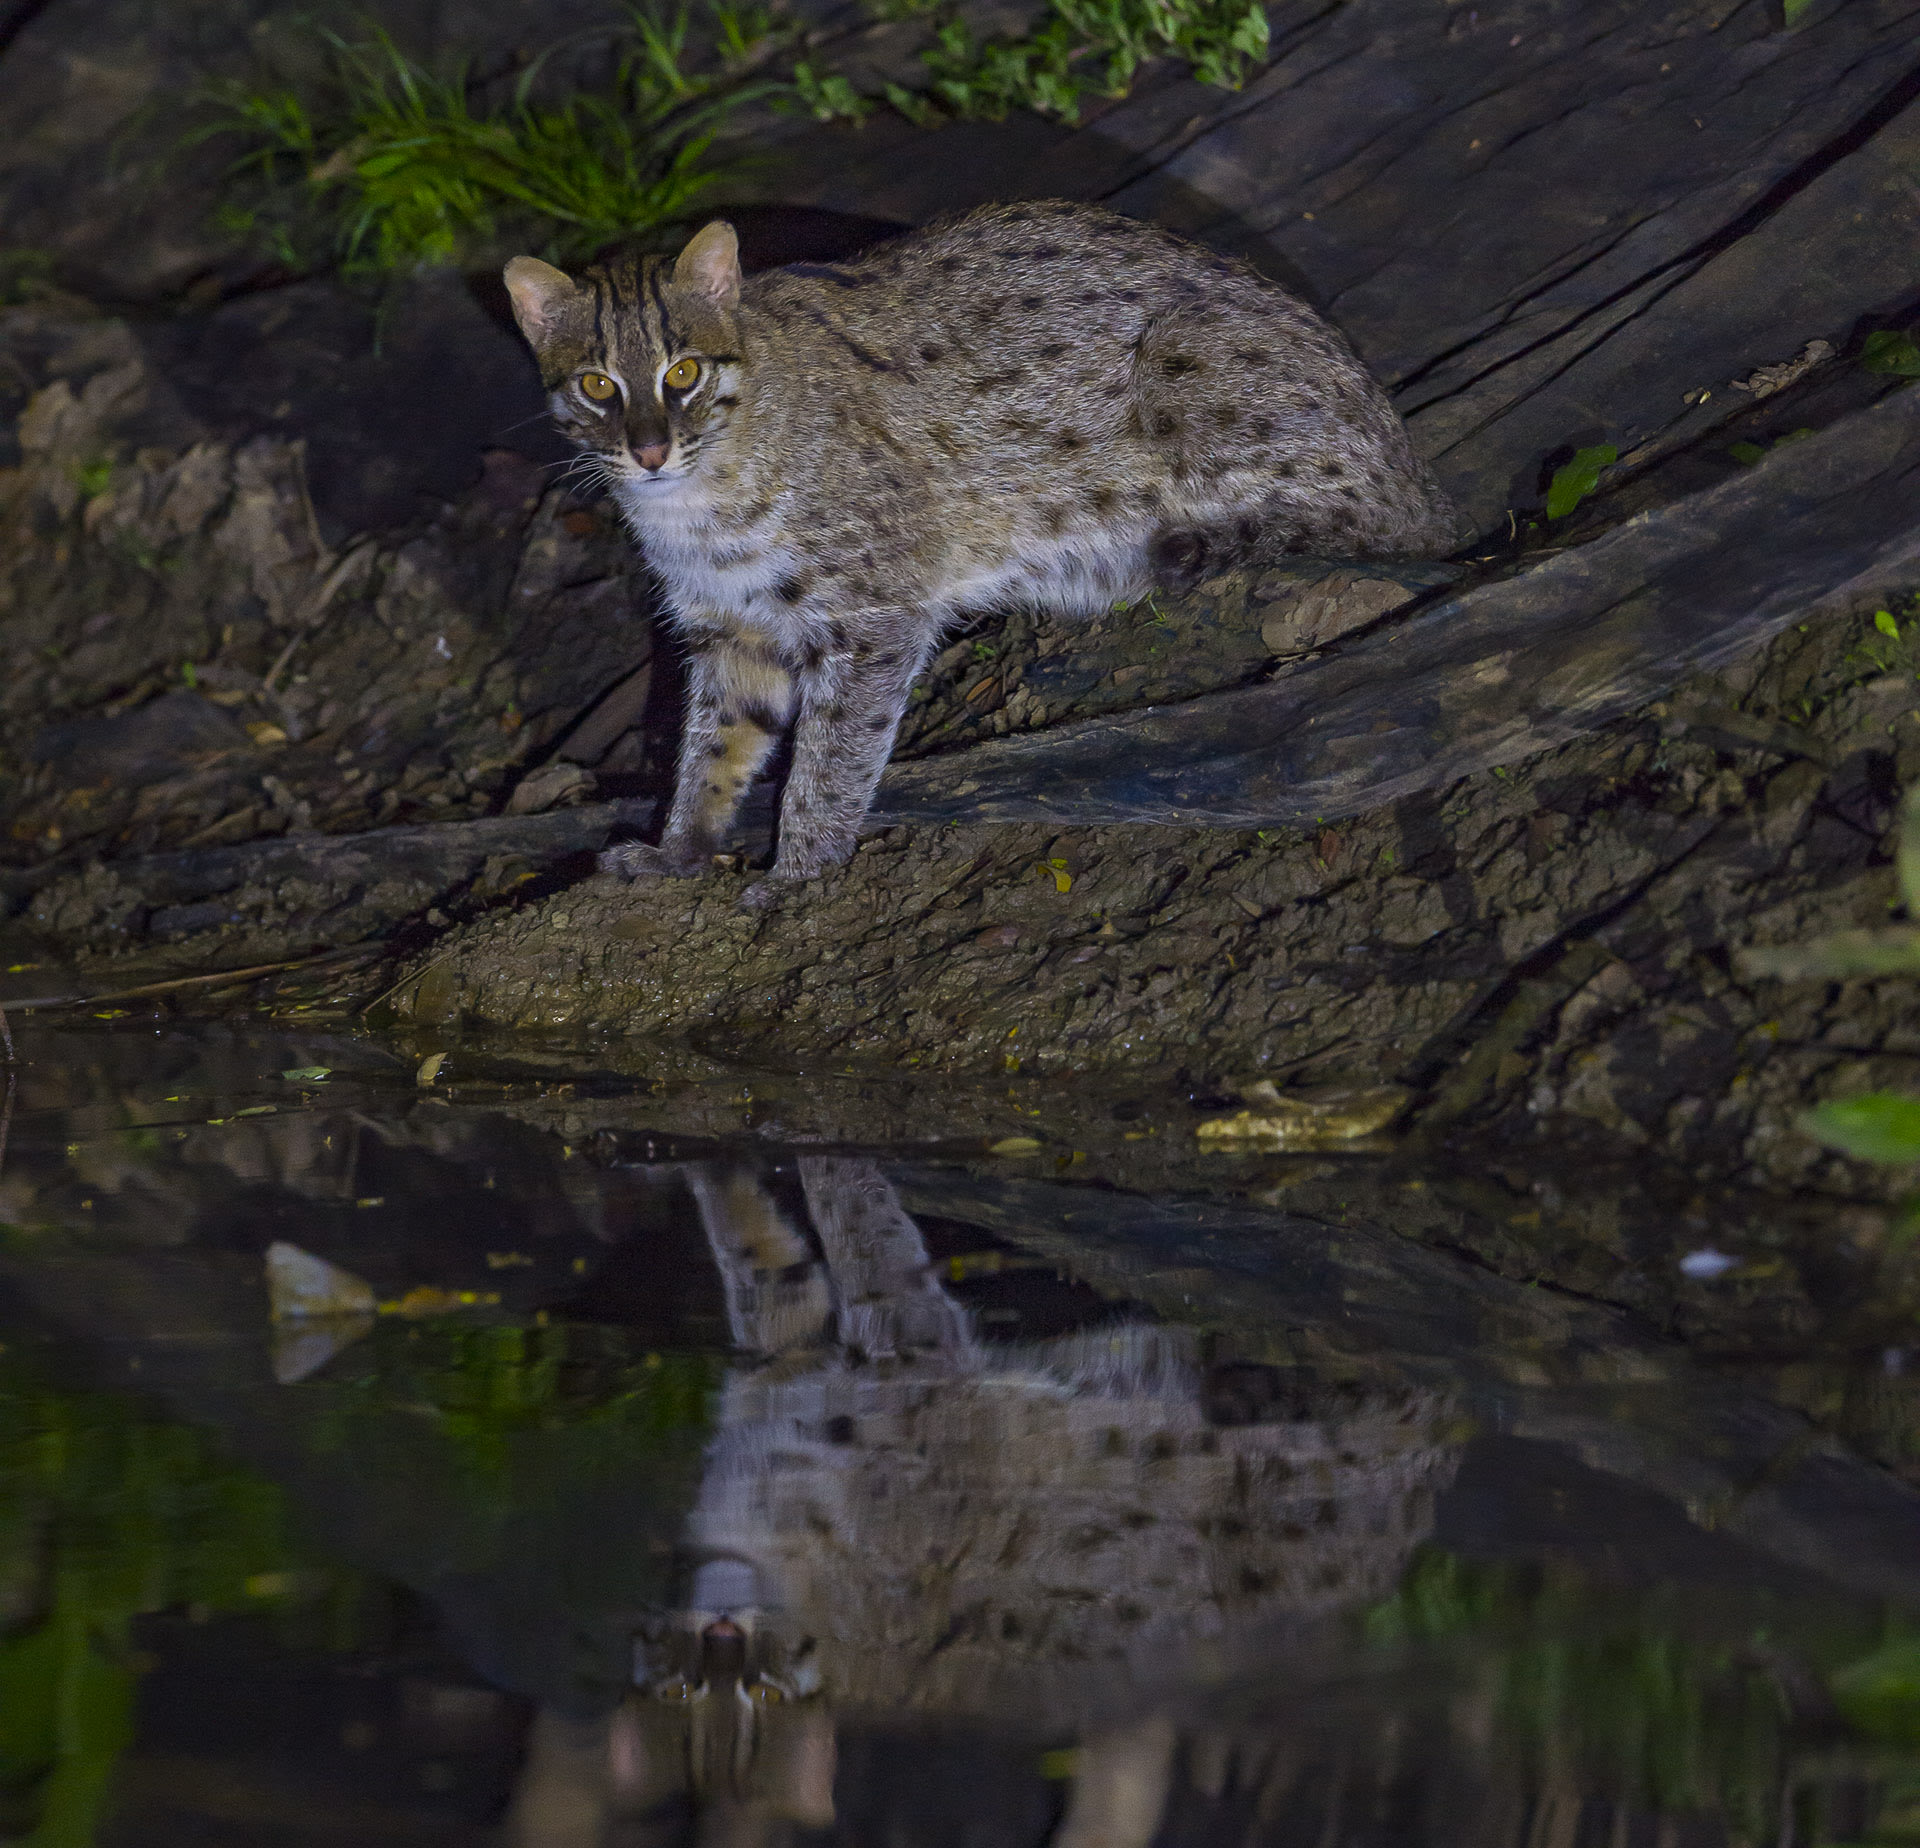 "Fishing cats in Howrah ""have always lived in these rural landscapes,"" says wildlife photographer Dhritiman Mukherjee. ""but they are so stealthy, that people often don't know they are around."" There is also some confusion between identifying fishing cats and the similarly sized jungle cats and palm civet, says Mukherjee, ""so people may know that there is some wild cat around, but not which one it is."" Photo: Dhritiman Mukherjee"